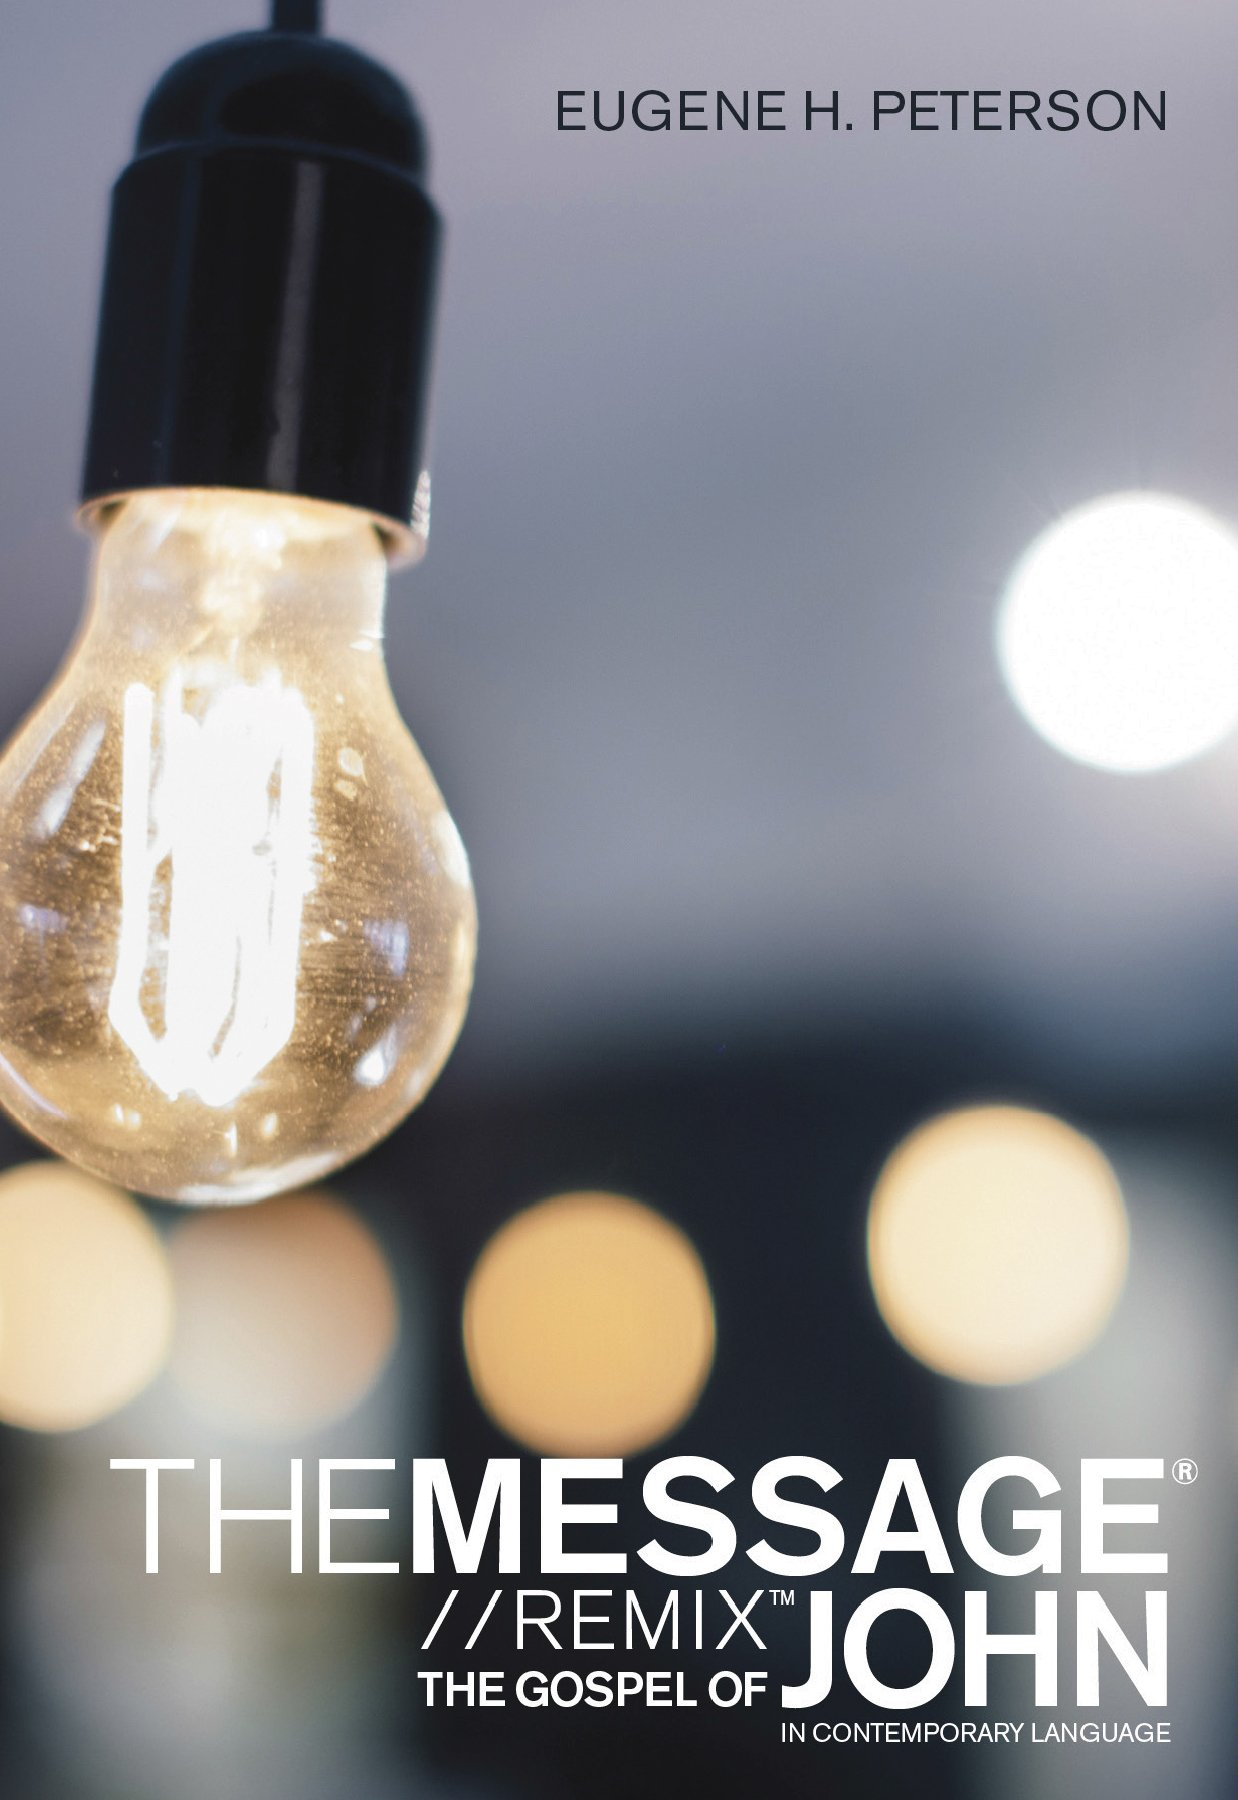 The Message Gospel of John in Contemporary Language: Eugene H. Peterson:  9781615212781: Amazon.com: Books